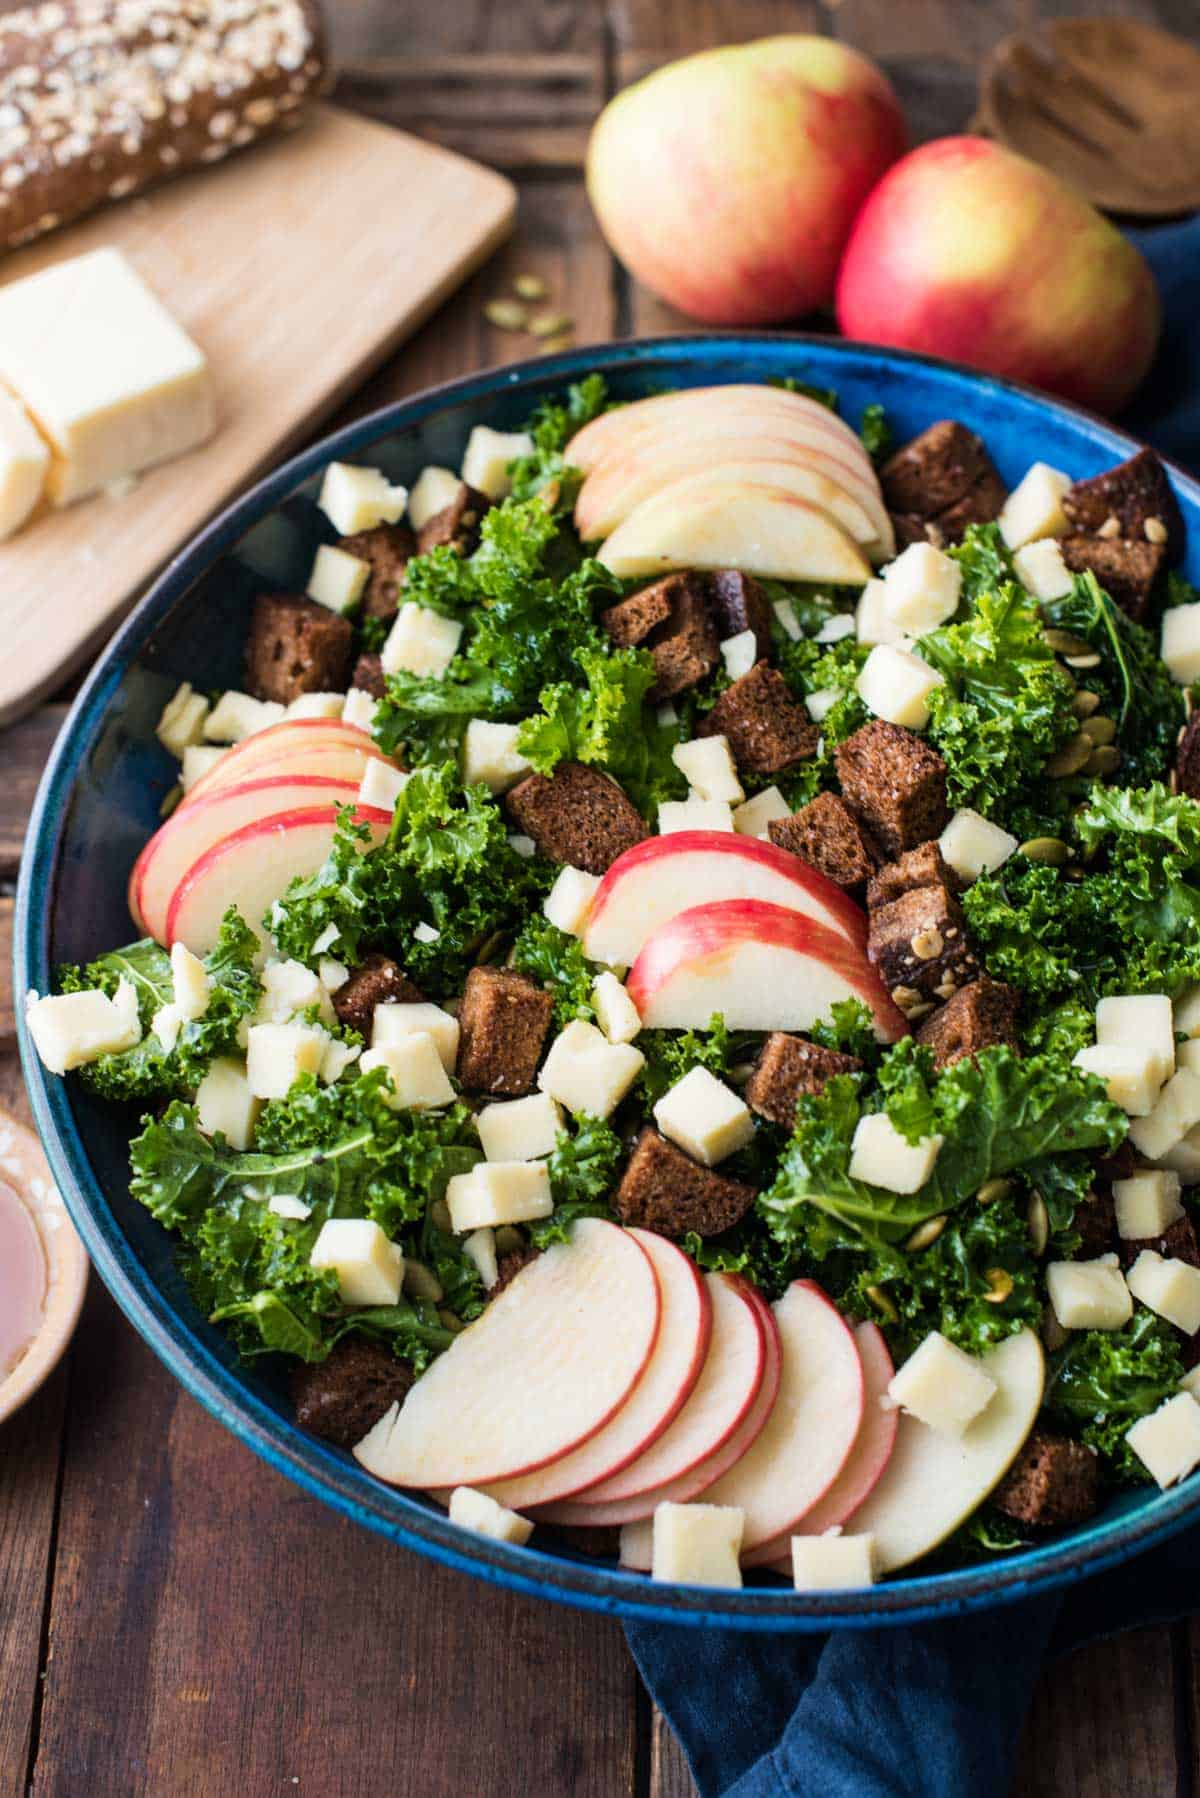 Autumn Kale Salad with Honeycrisp and Cheddar | Hunger|Thirst|Play